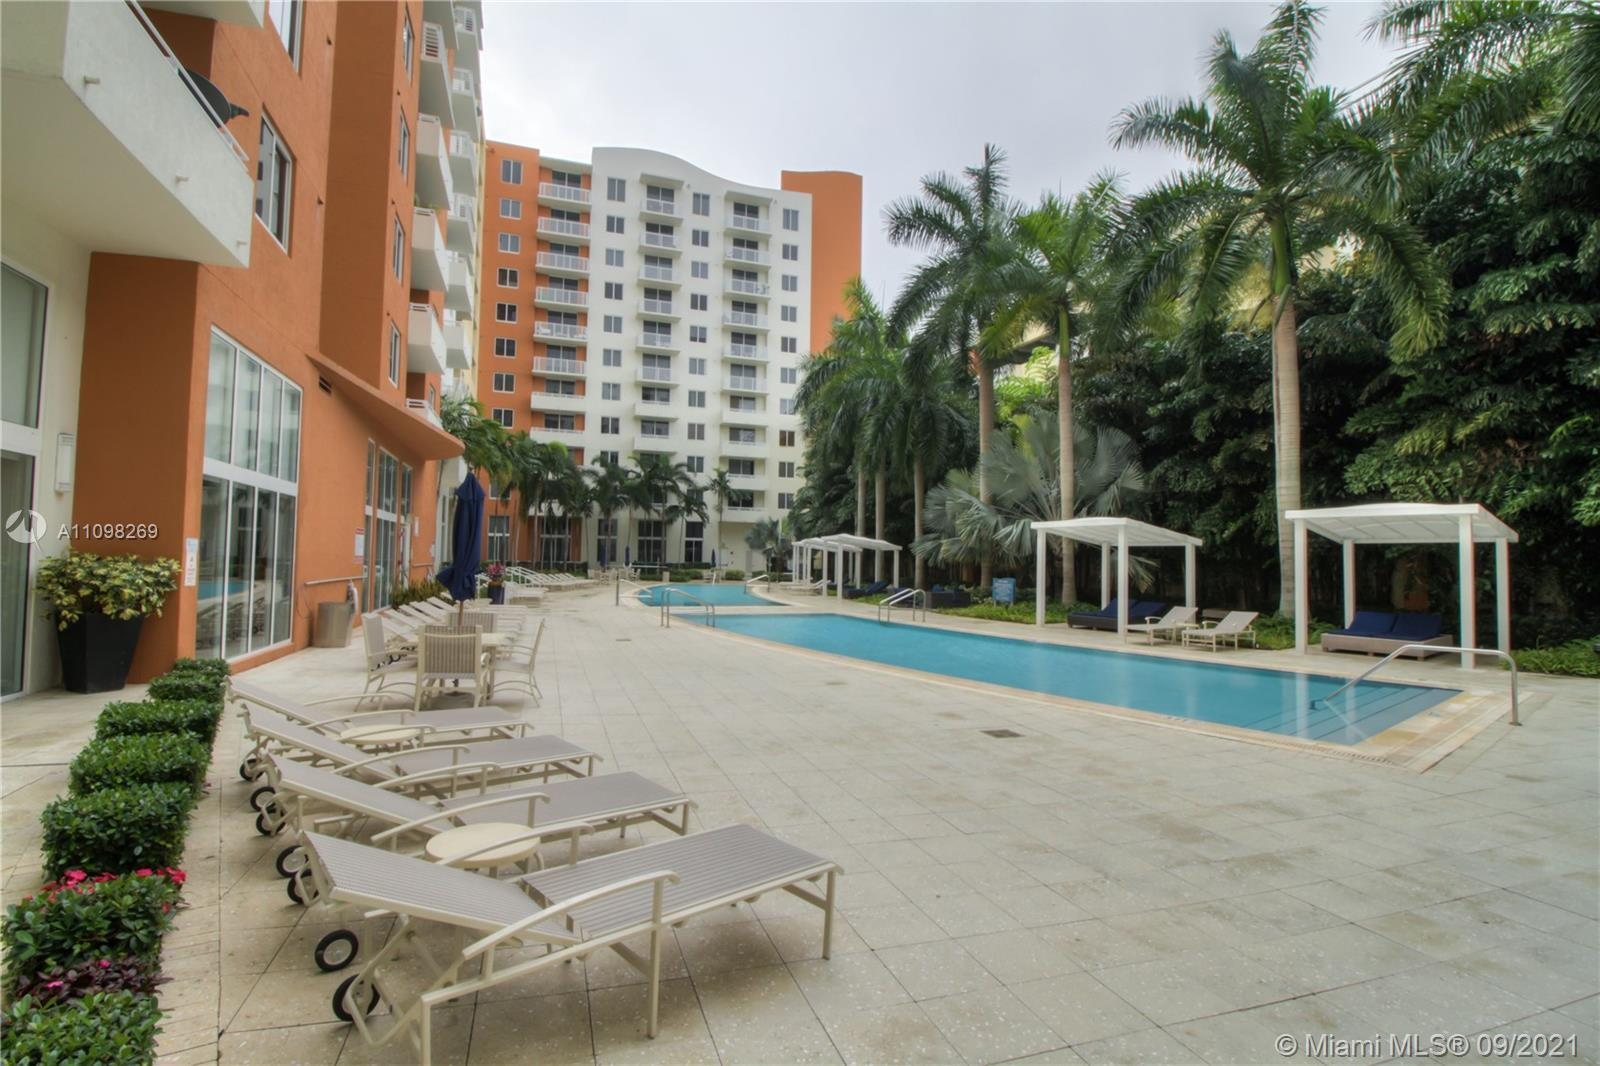 Great location!  Unit in the heart of the desirable city of Aventura. Spacious floorplan with 2 Beds